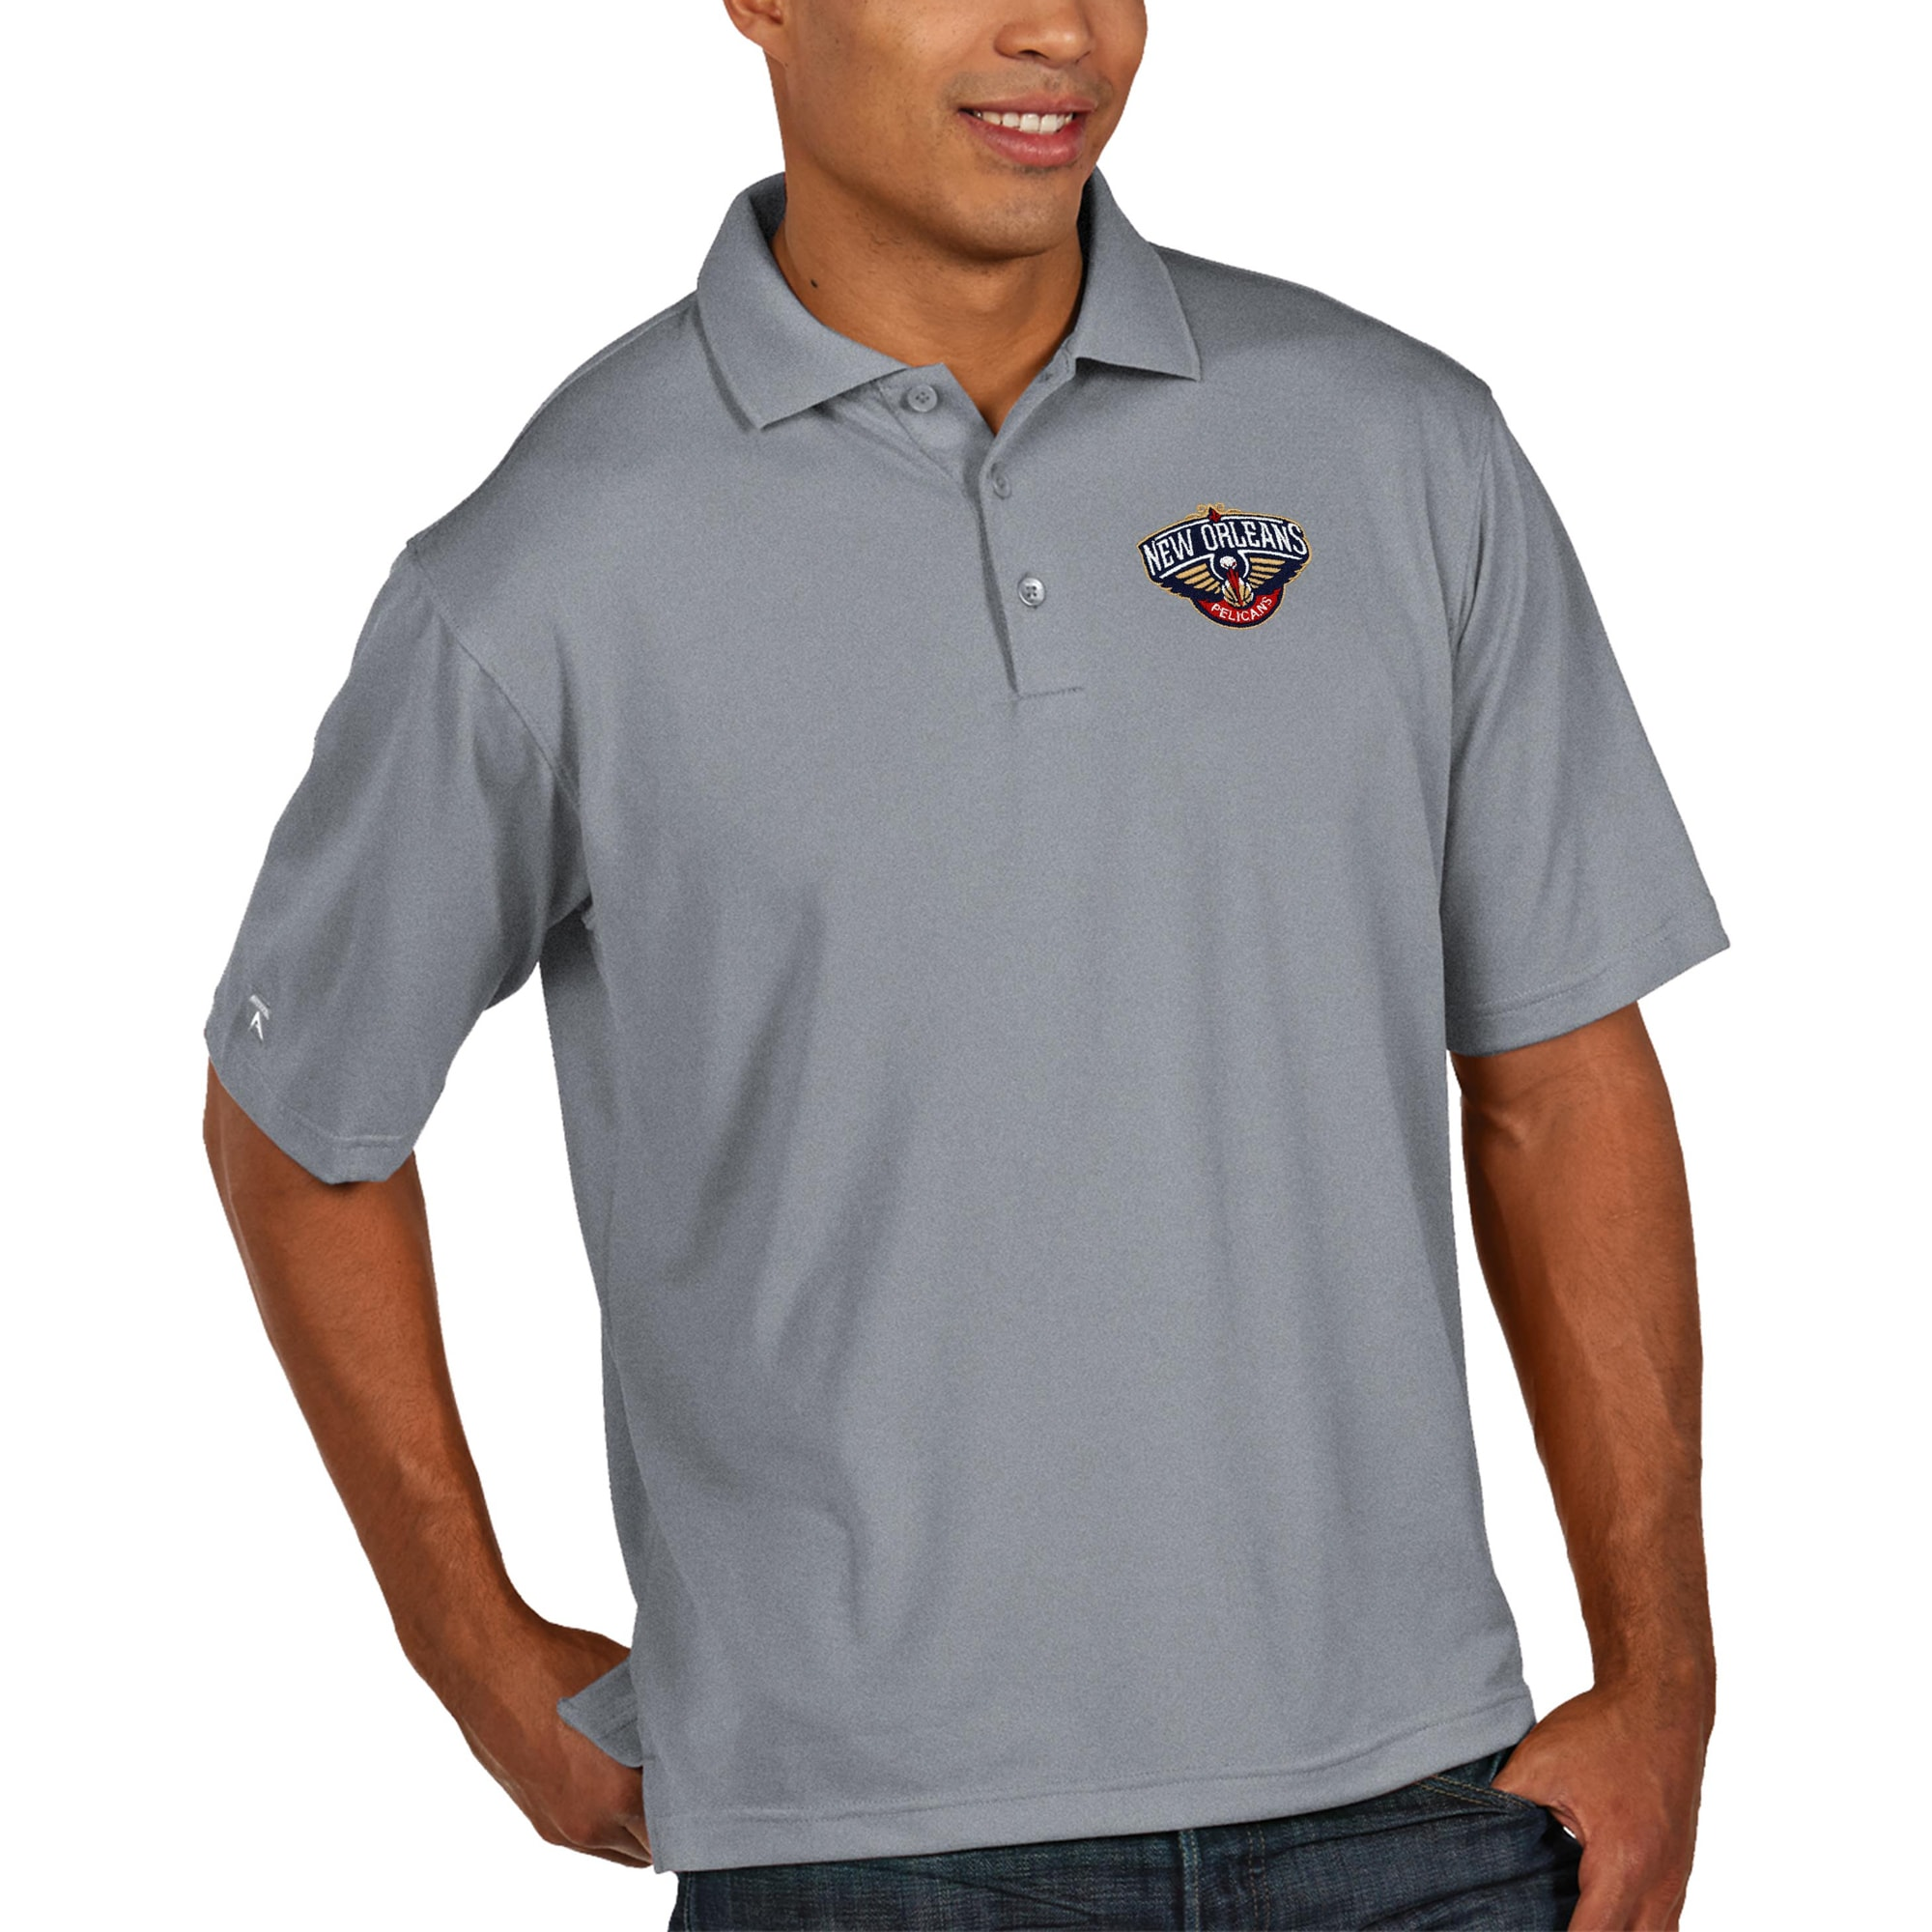 New Orleans Pelicans Antigua Pique Xtra Lite Big & Tall Polo - Heather Gray